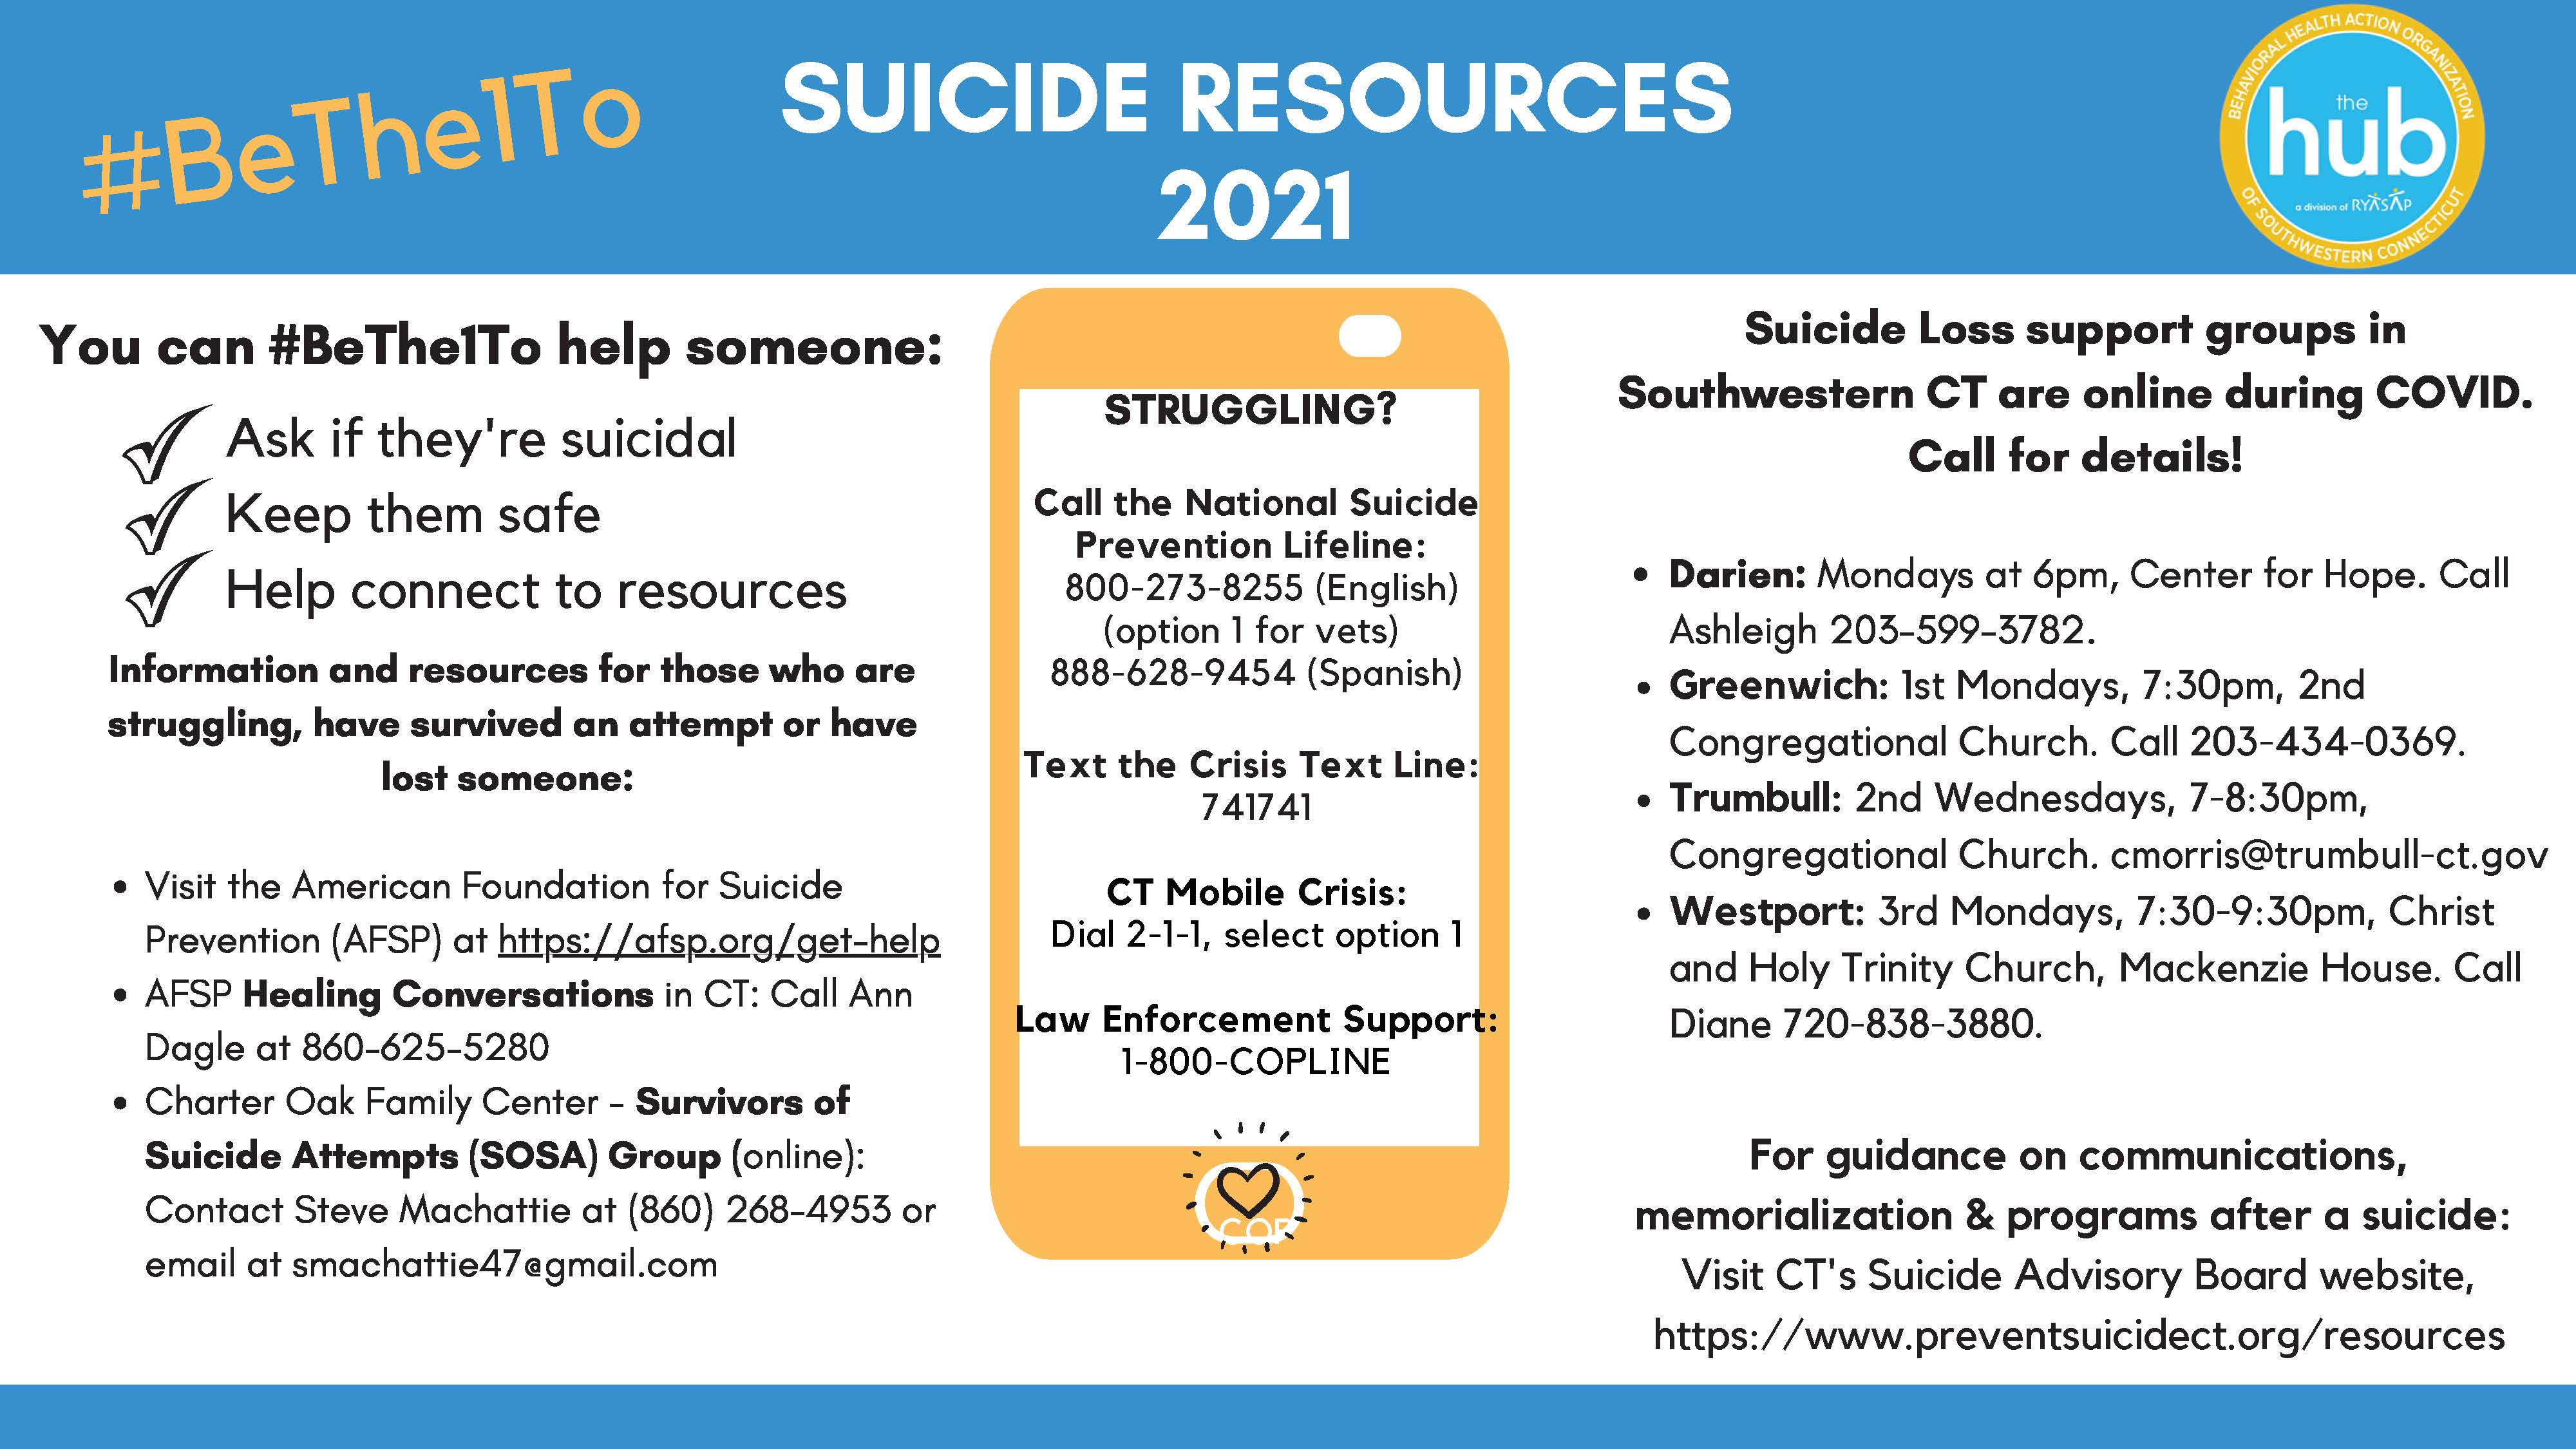 Suicide Resources 2021